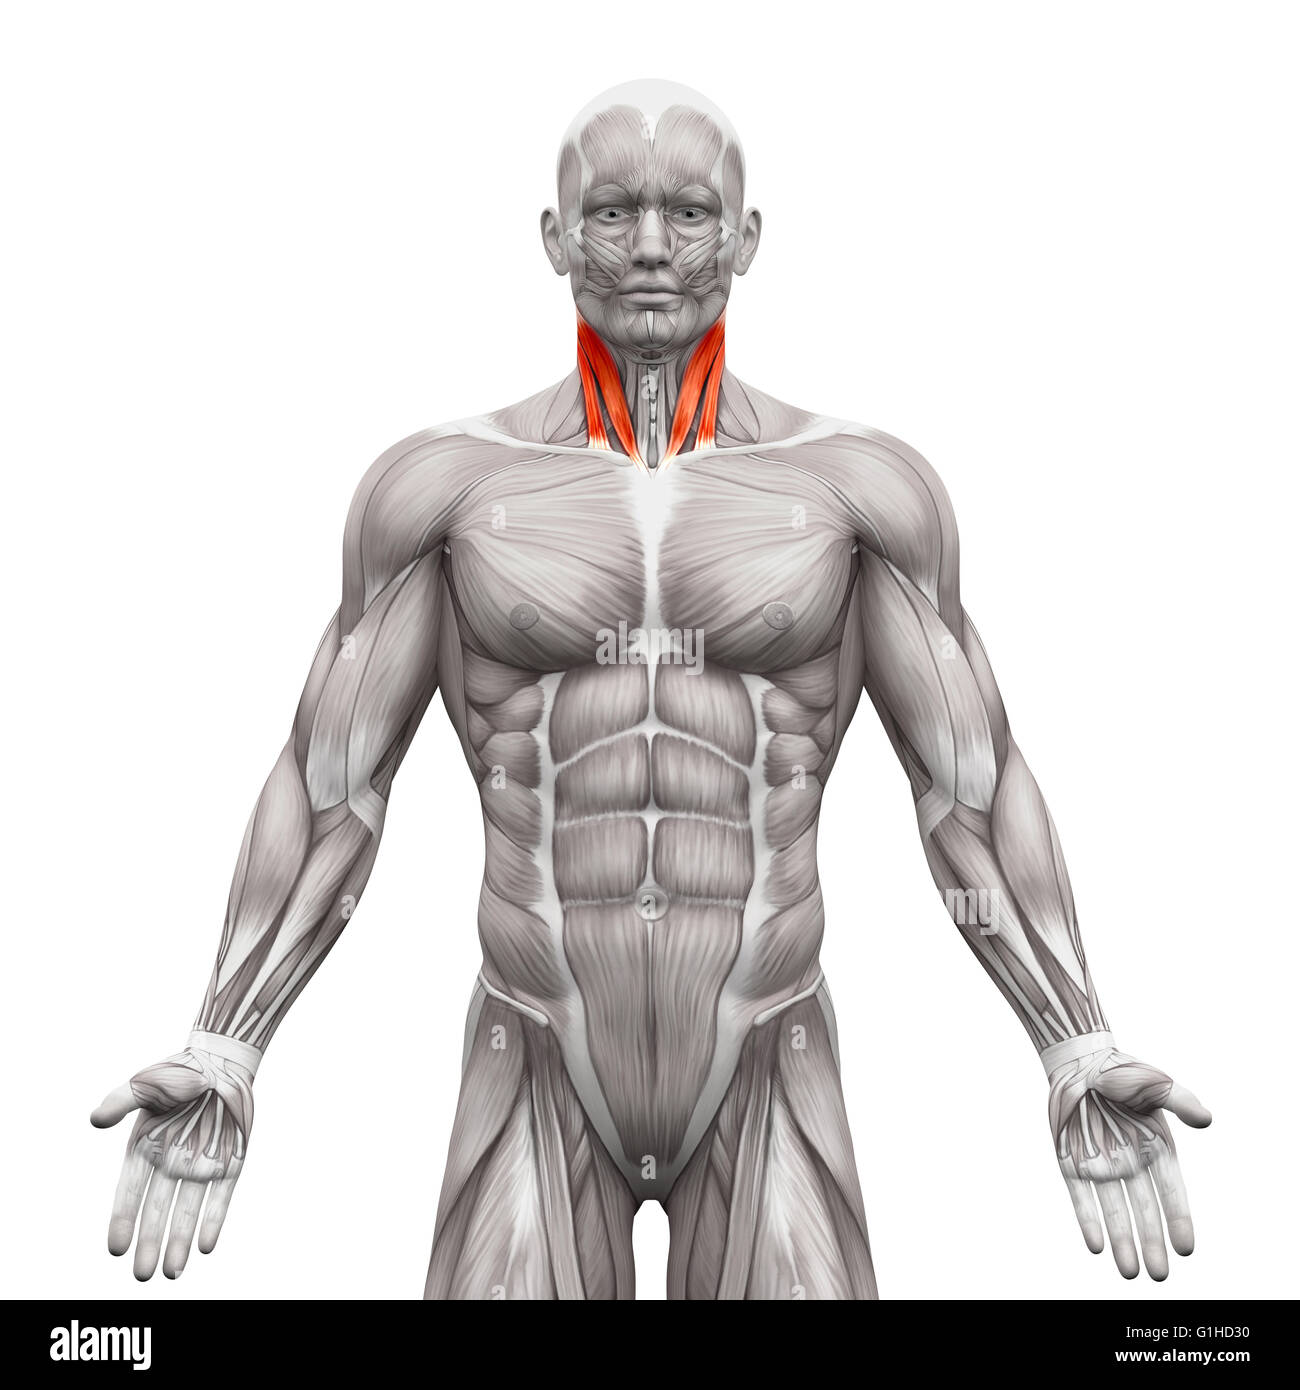 Neck Muscles - Sternal Head and Clavicular Head - Anatomy Muscles ...